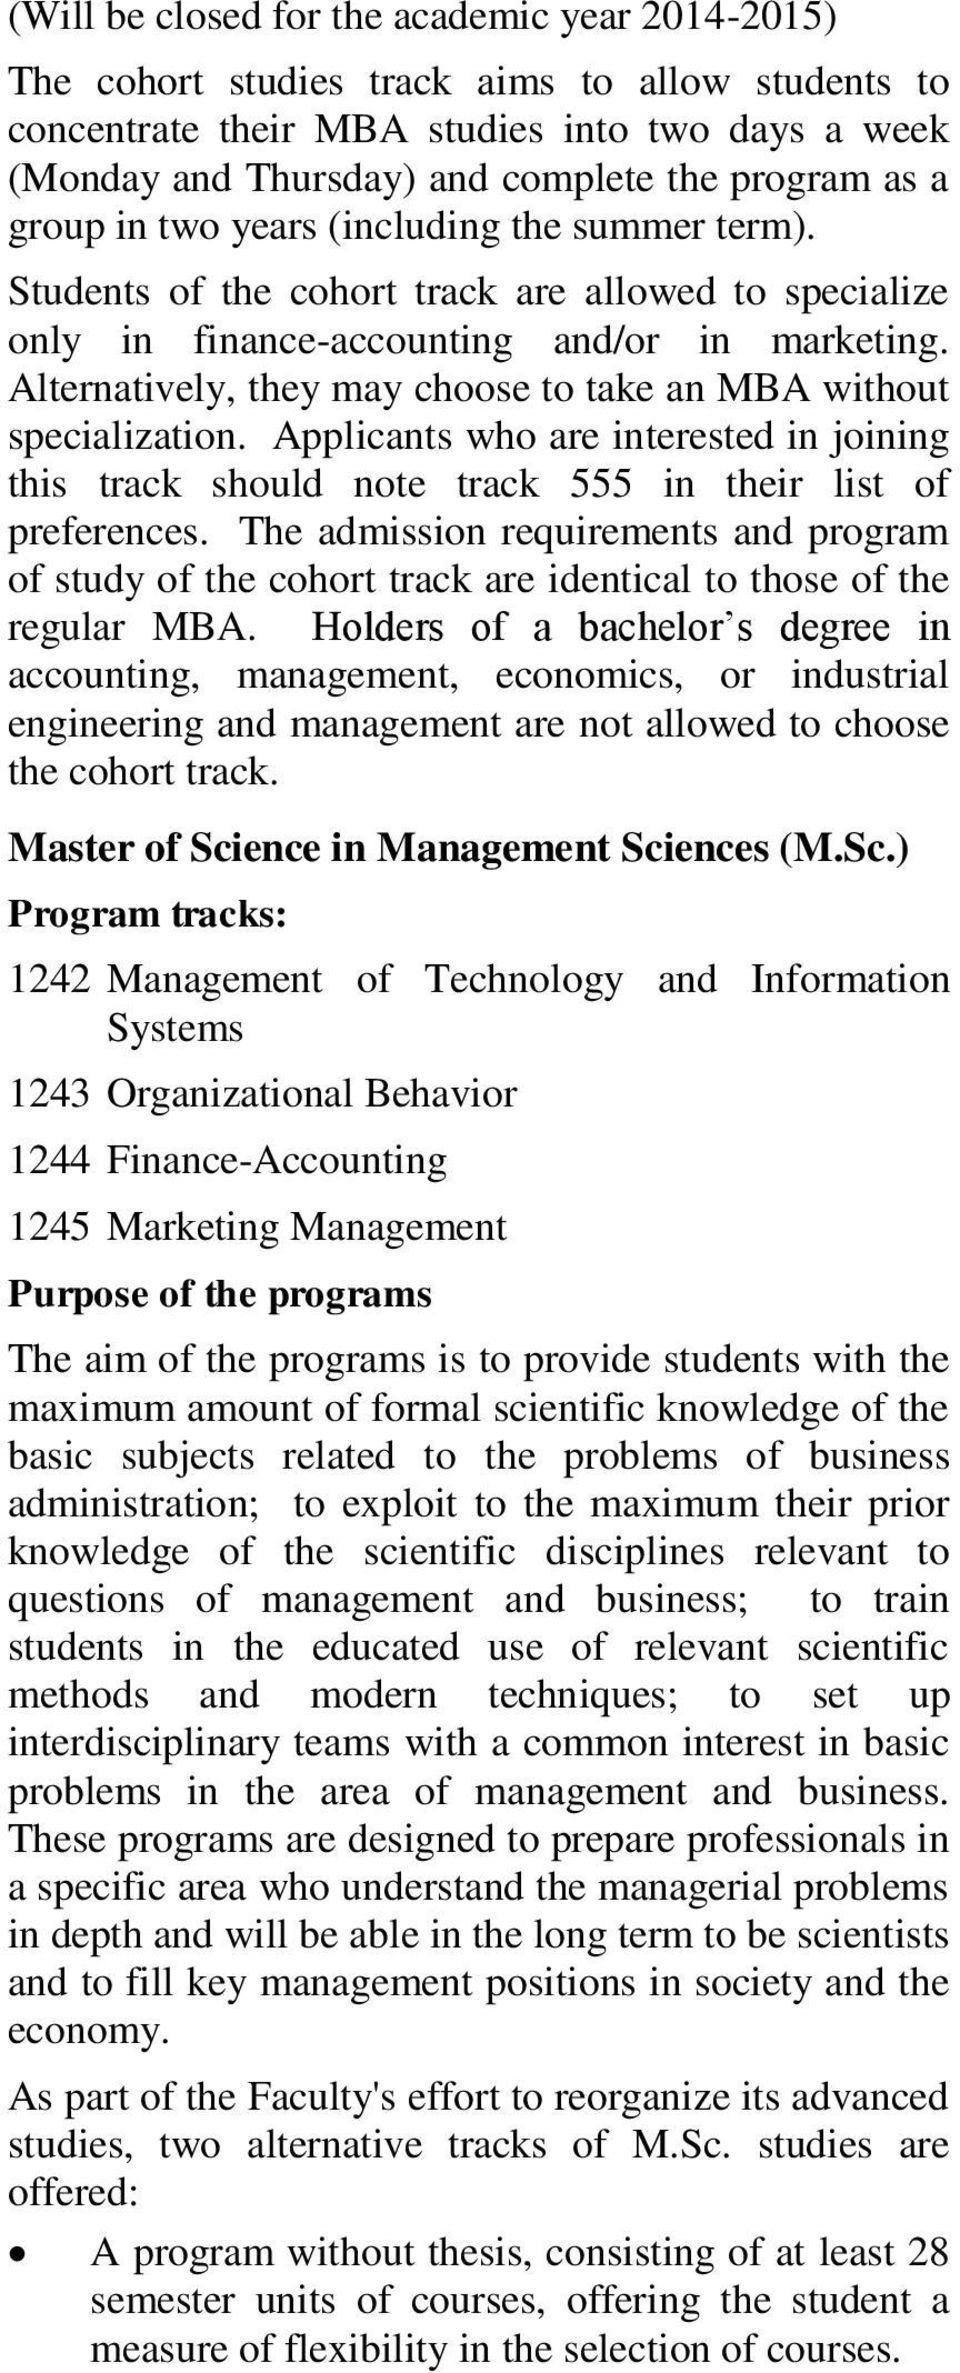 Alternatively, they may choose to take an MBA without specialization. Applicants who are interested in joining this track should note track 555 in their list of preferences.